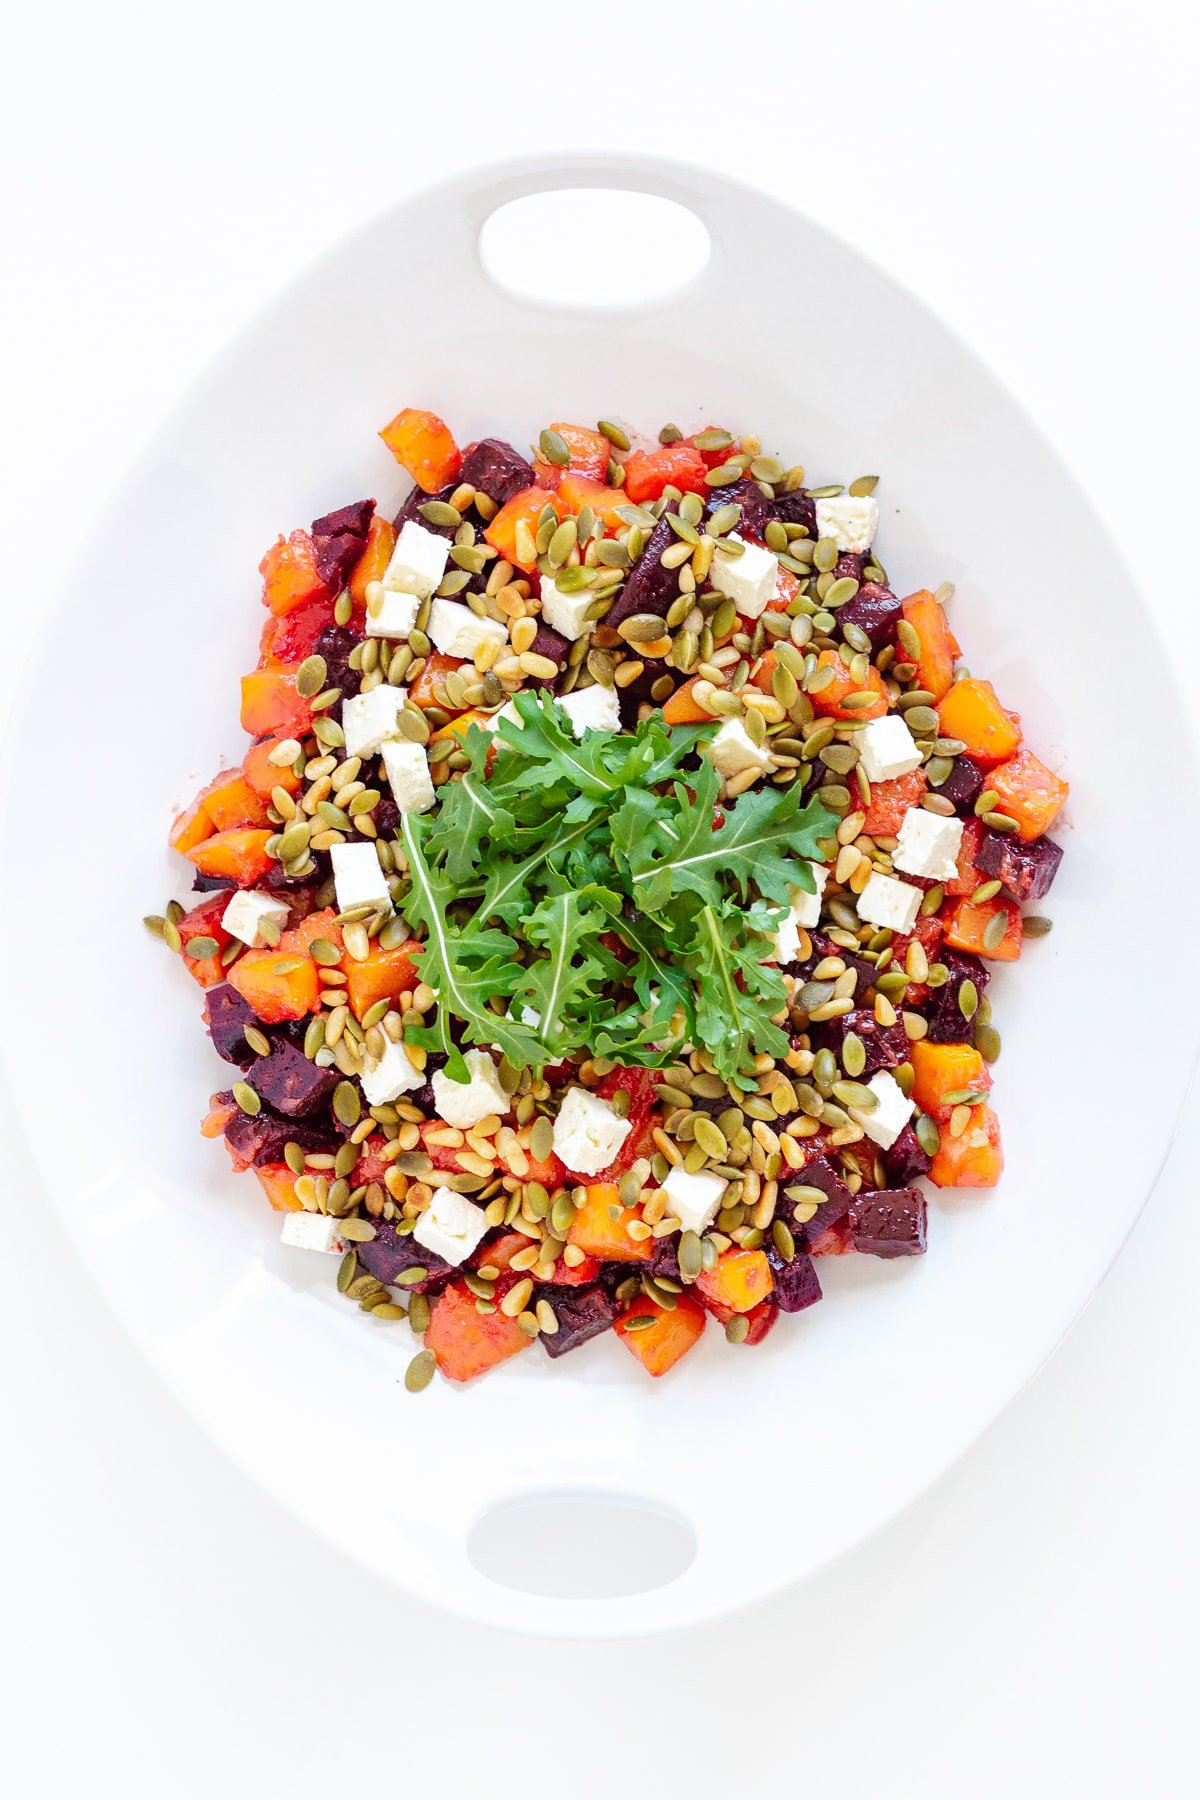 Roasted pumpkin and beetroot salad on a white serving platter.